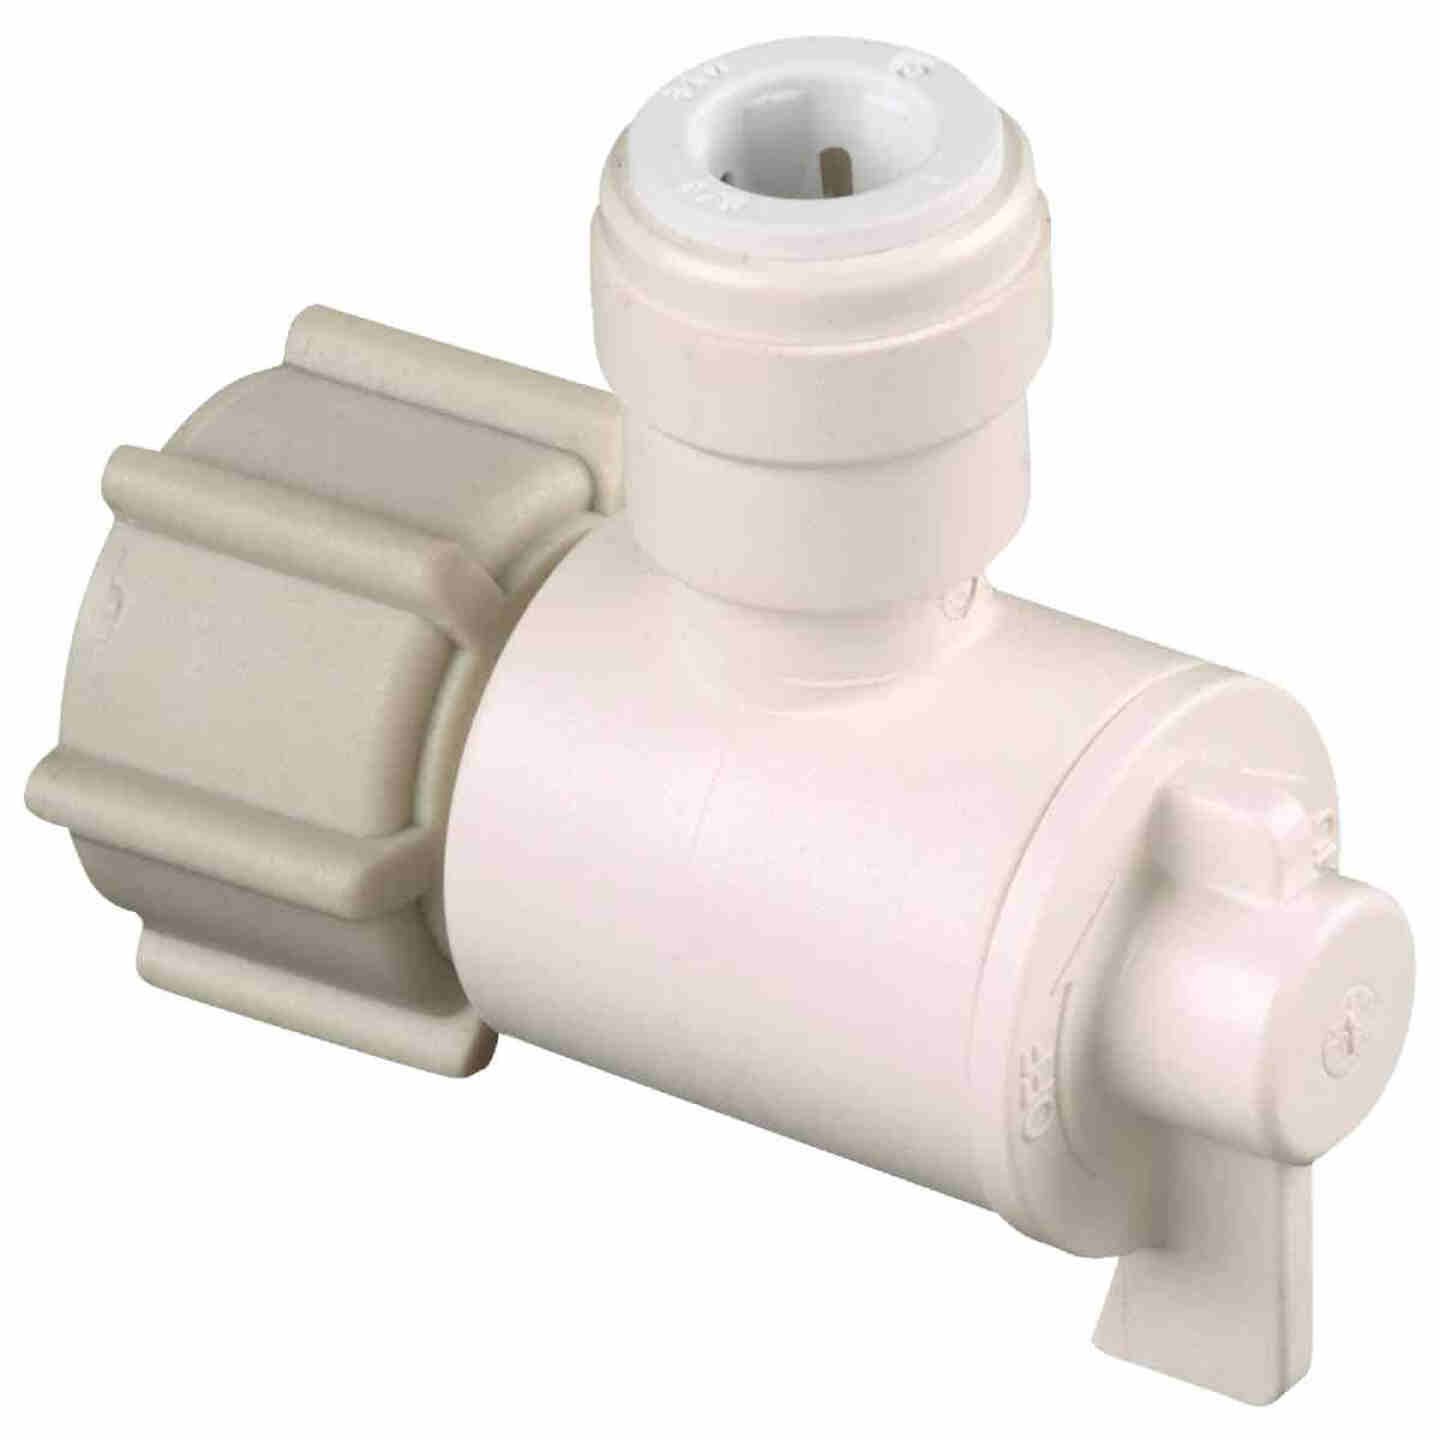 Watts 1/2 In. FPT X 3/8 In. CTS Quick Connect Stop Angle Valve Image 1